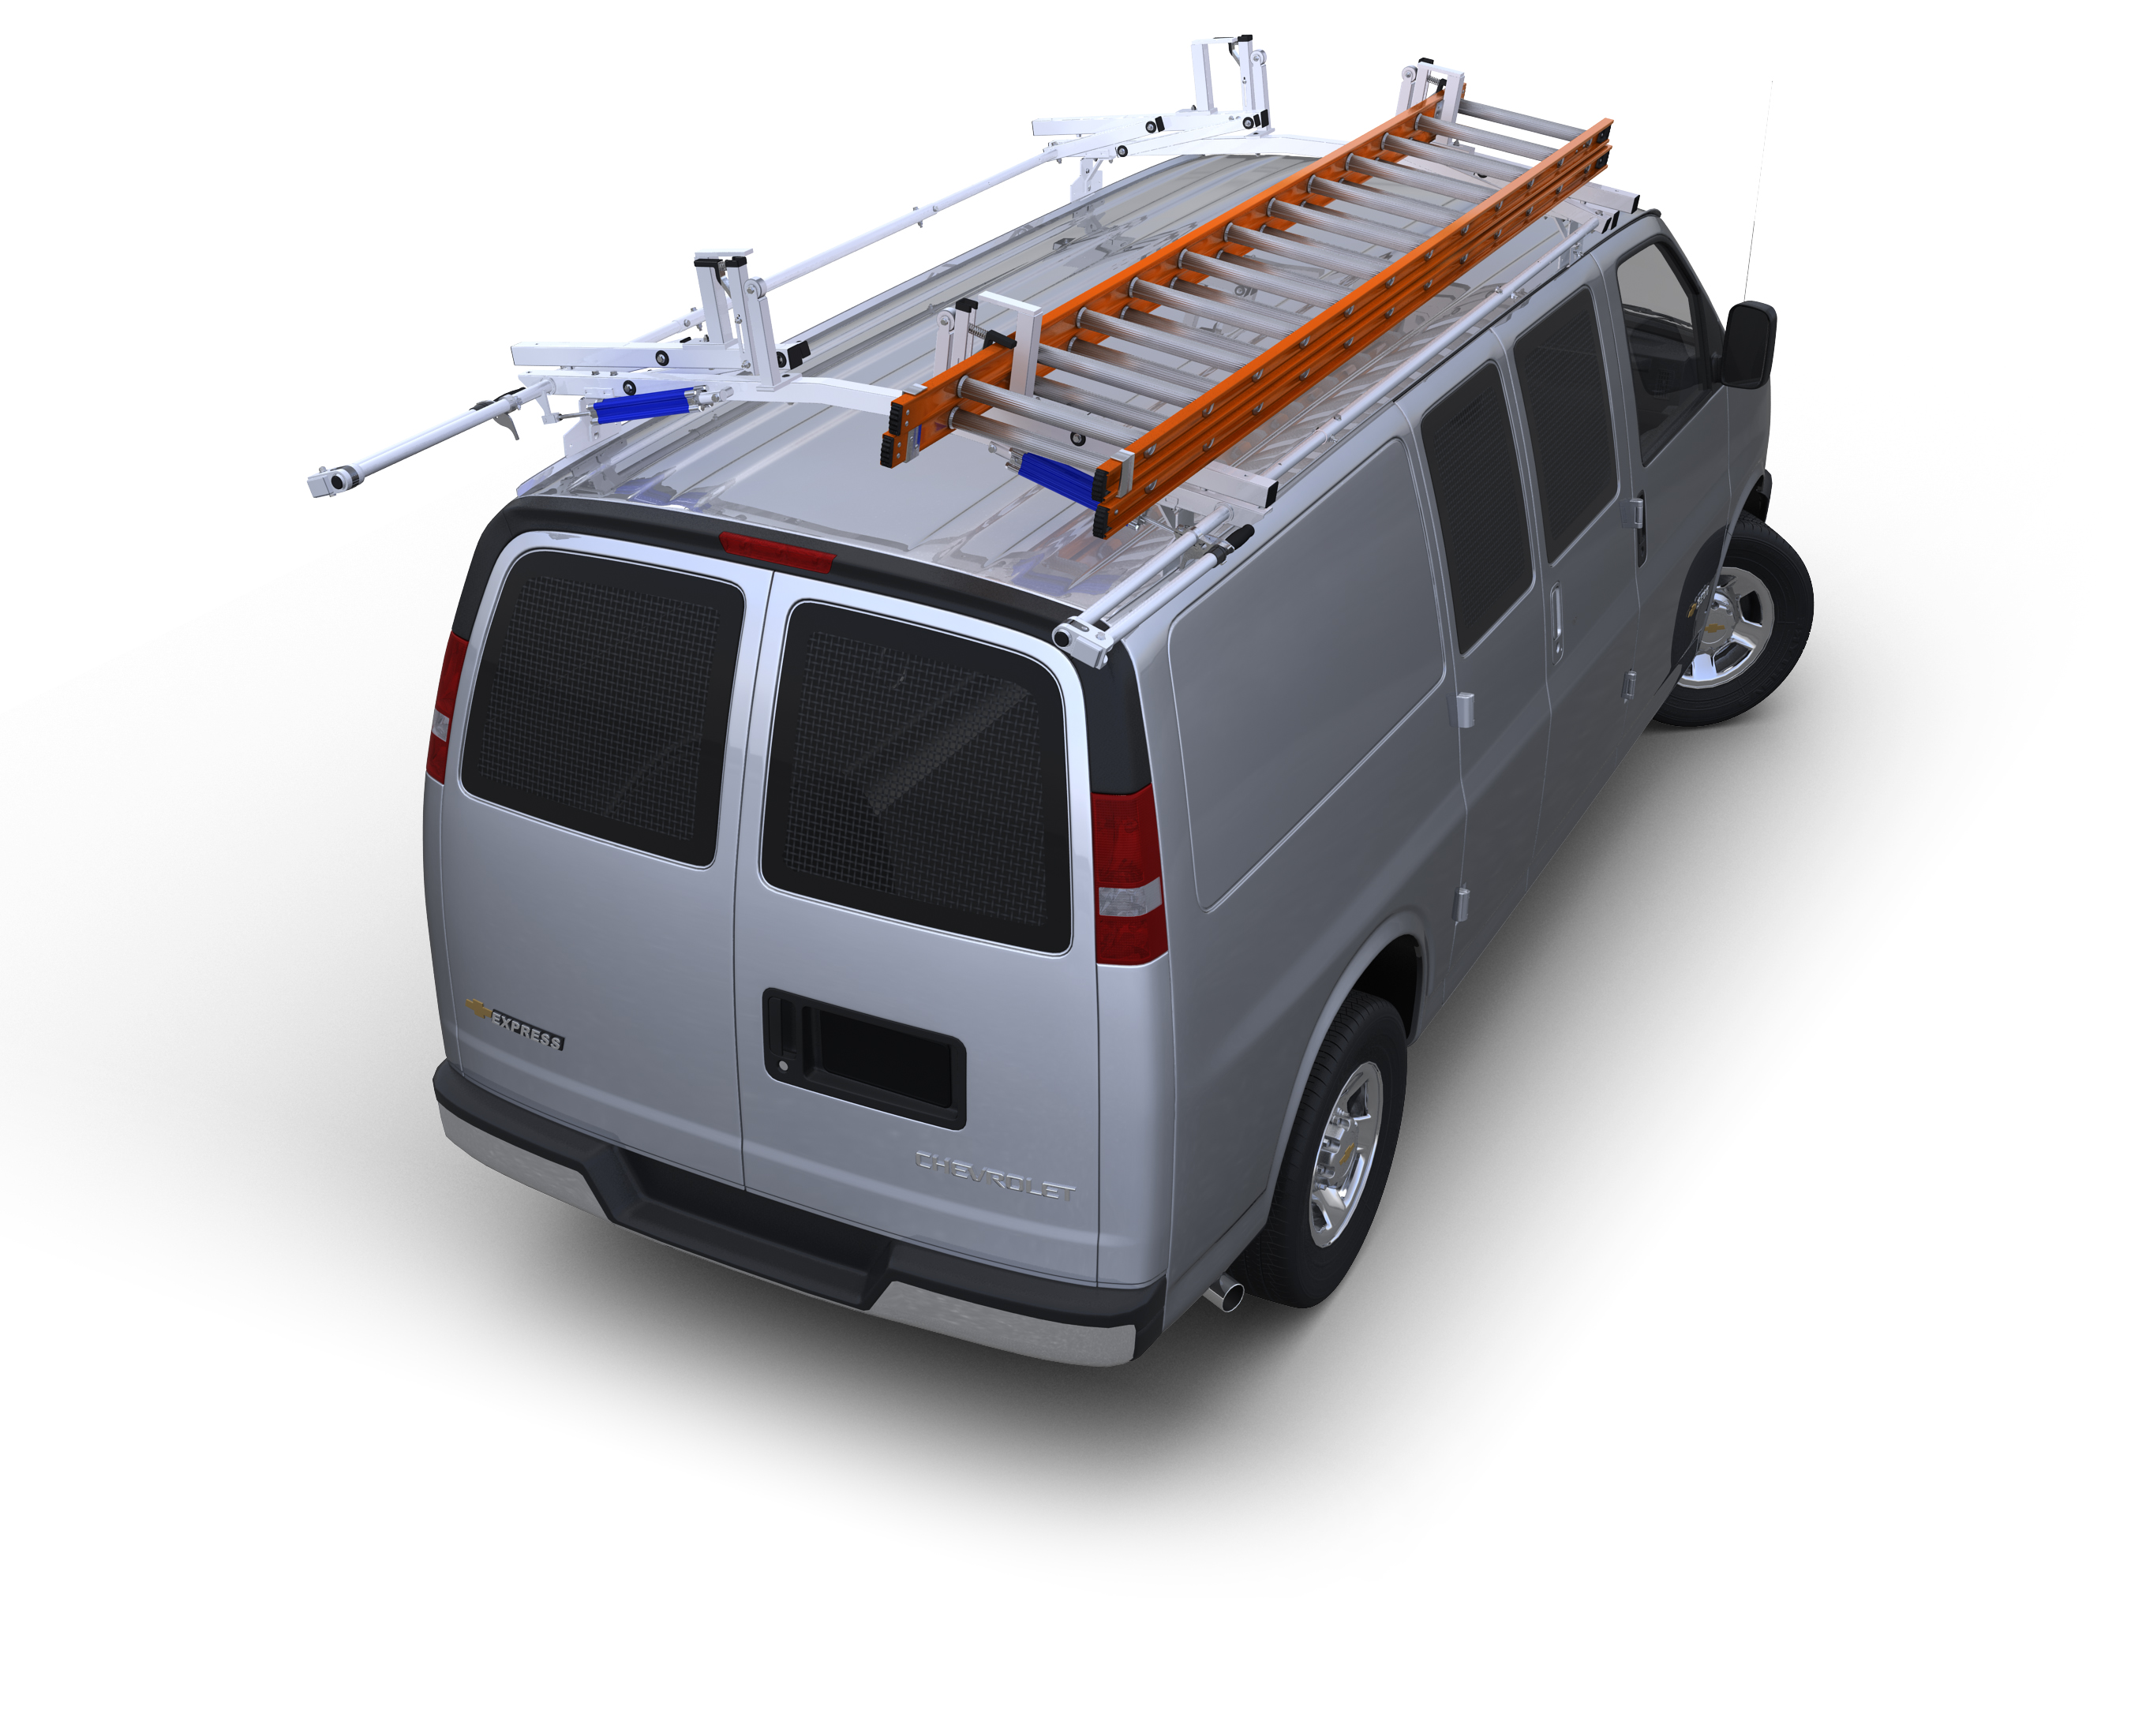 "2014 Transit Connect Contour Shelving with Open Back, 32"" Wide"